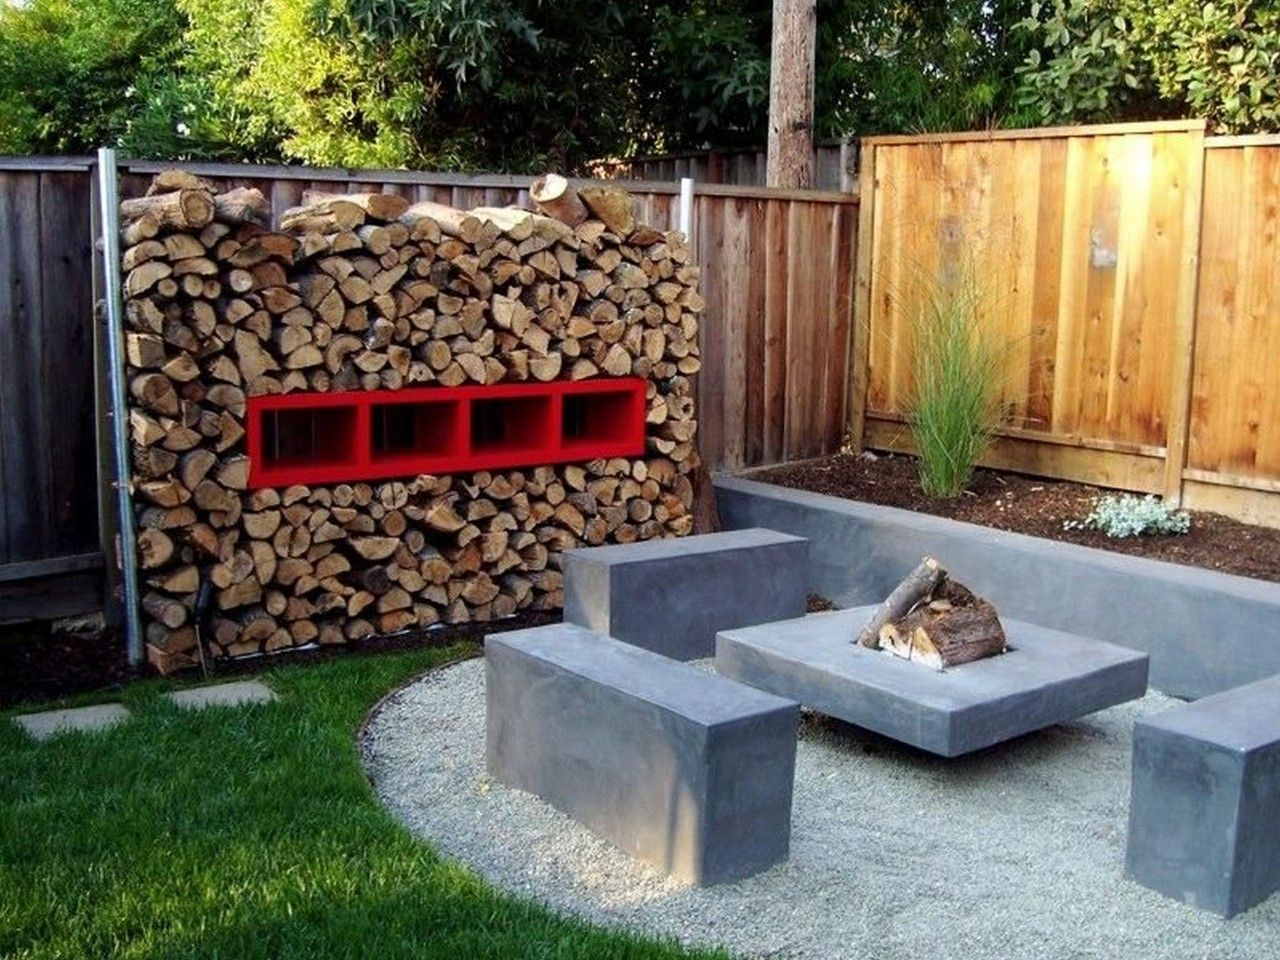 Easy on the eye Backyard Gardens Structure Lovely Cool Backyard Designs  Winning Things Impression, Backyard - Easy On The Eye Backyard Gardens Structure Lovely Cool Backyard